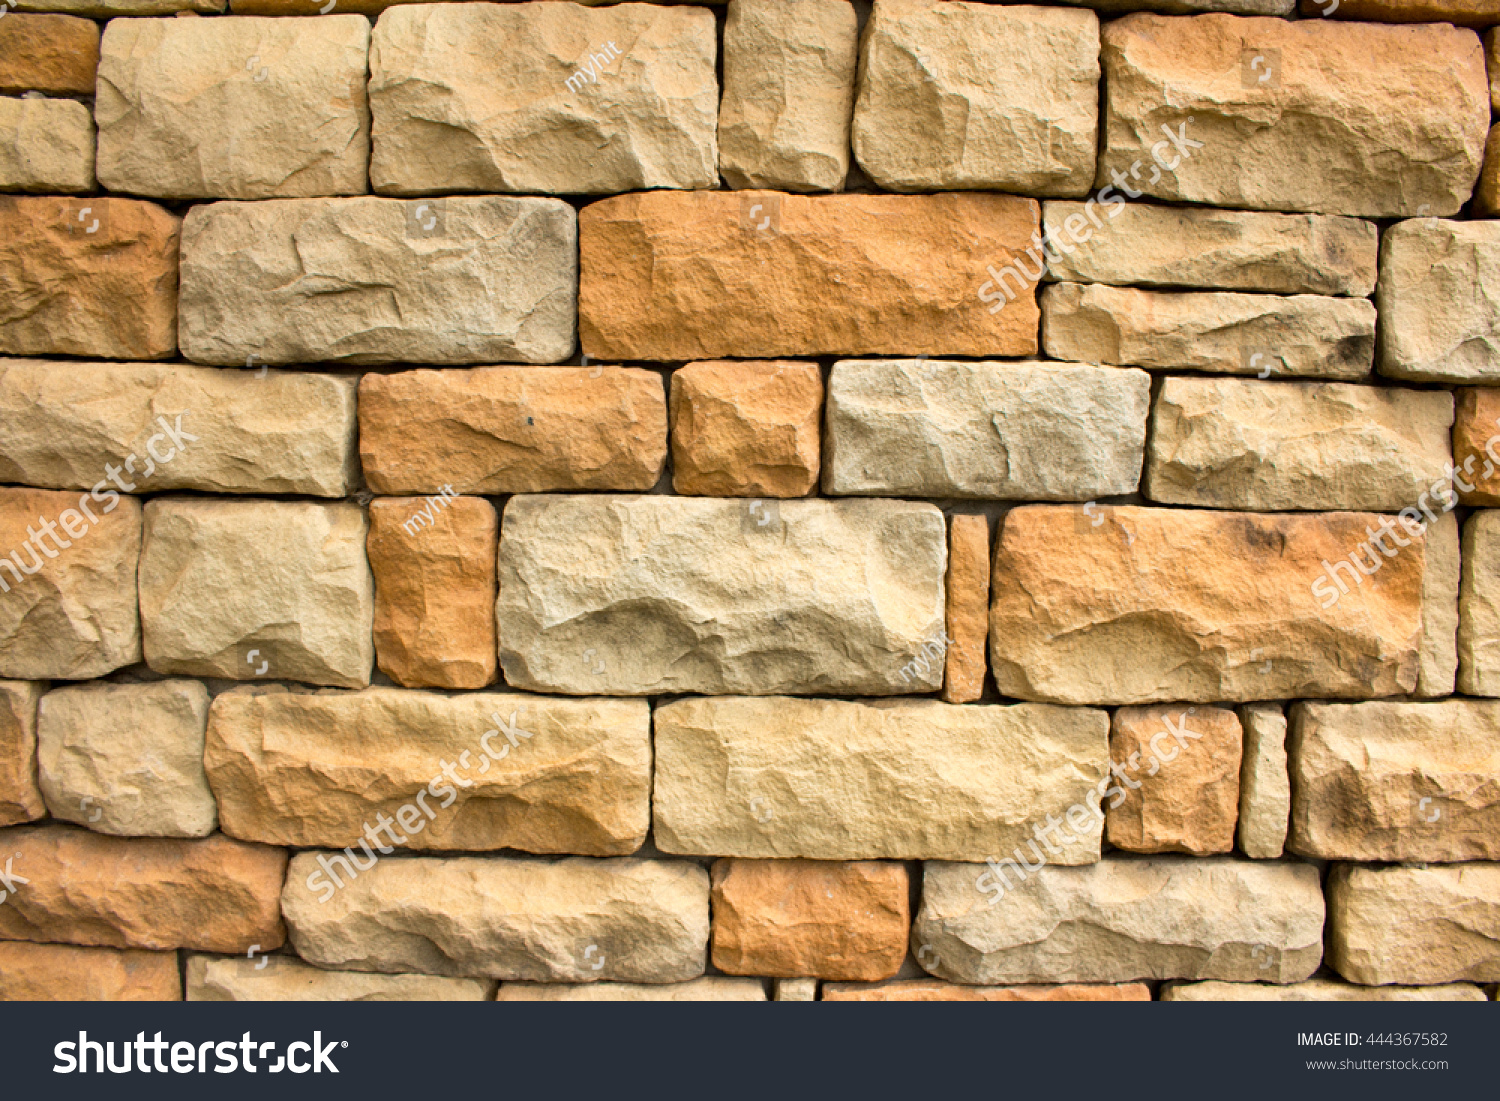 Natural stone materials in classic building patterns and methods for ...